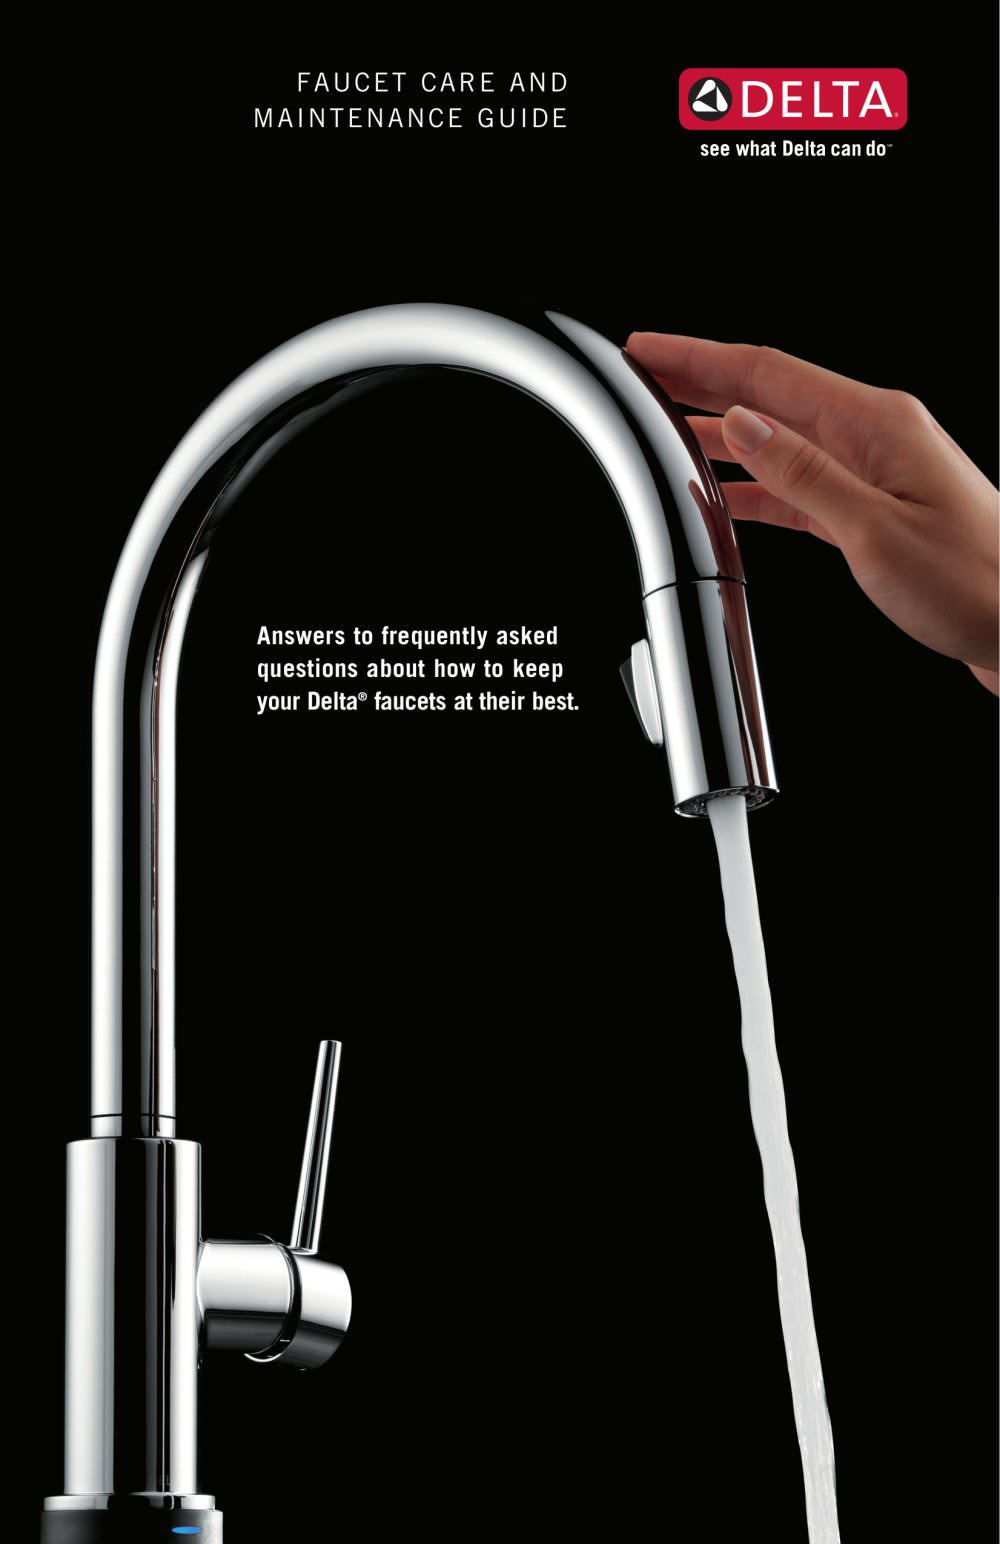 Delta Faucet Care and Maintenance Guide (DL-1767) - Delta - PDF ...